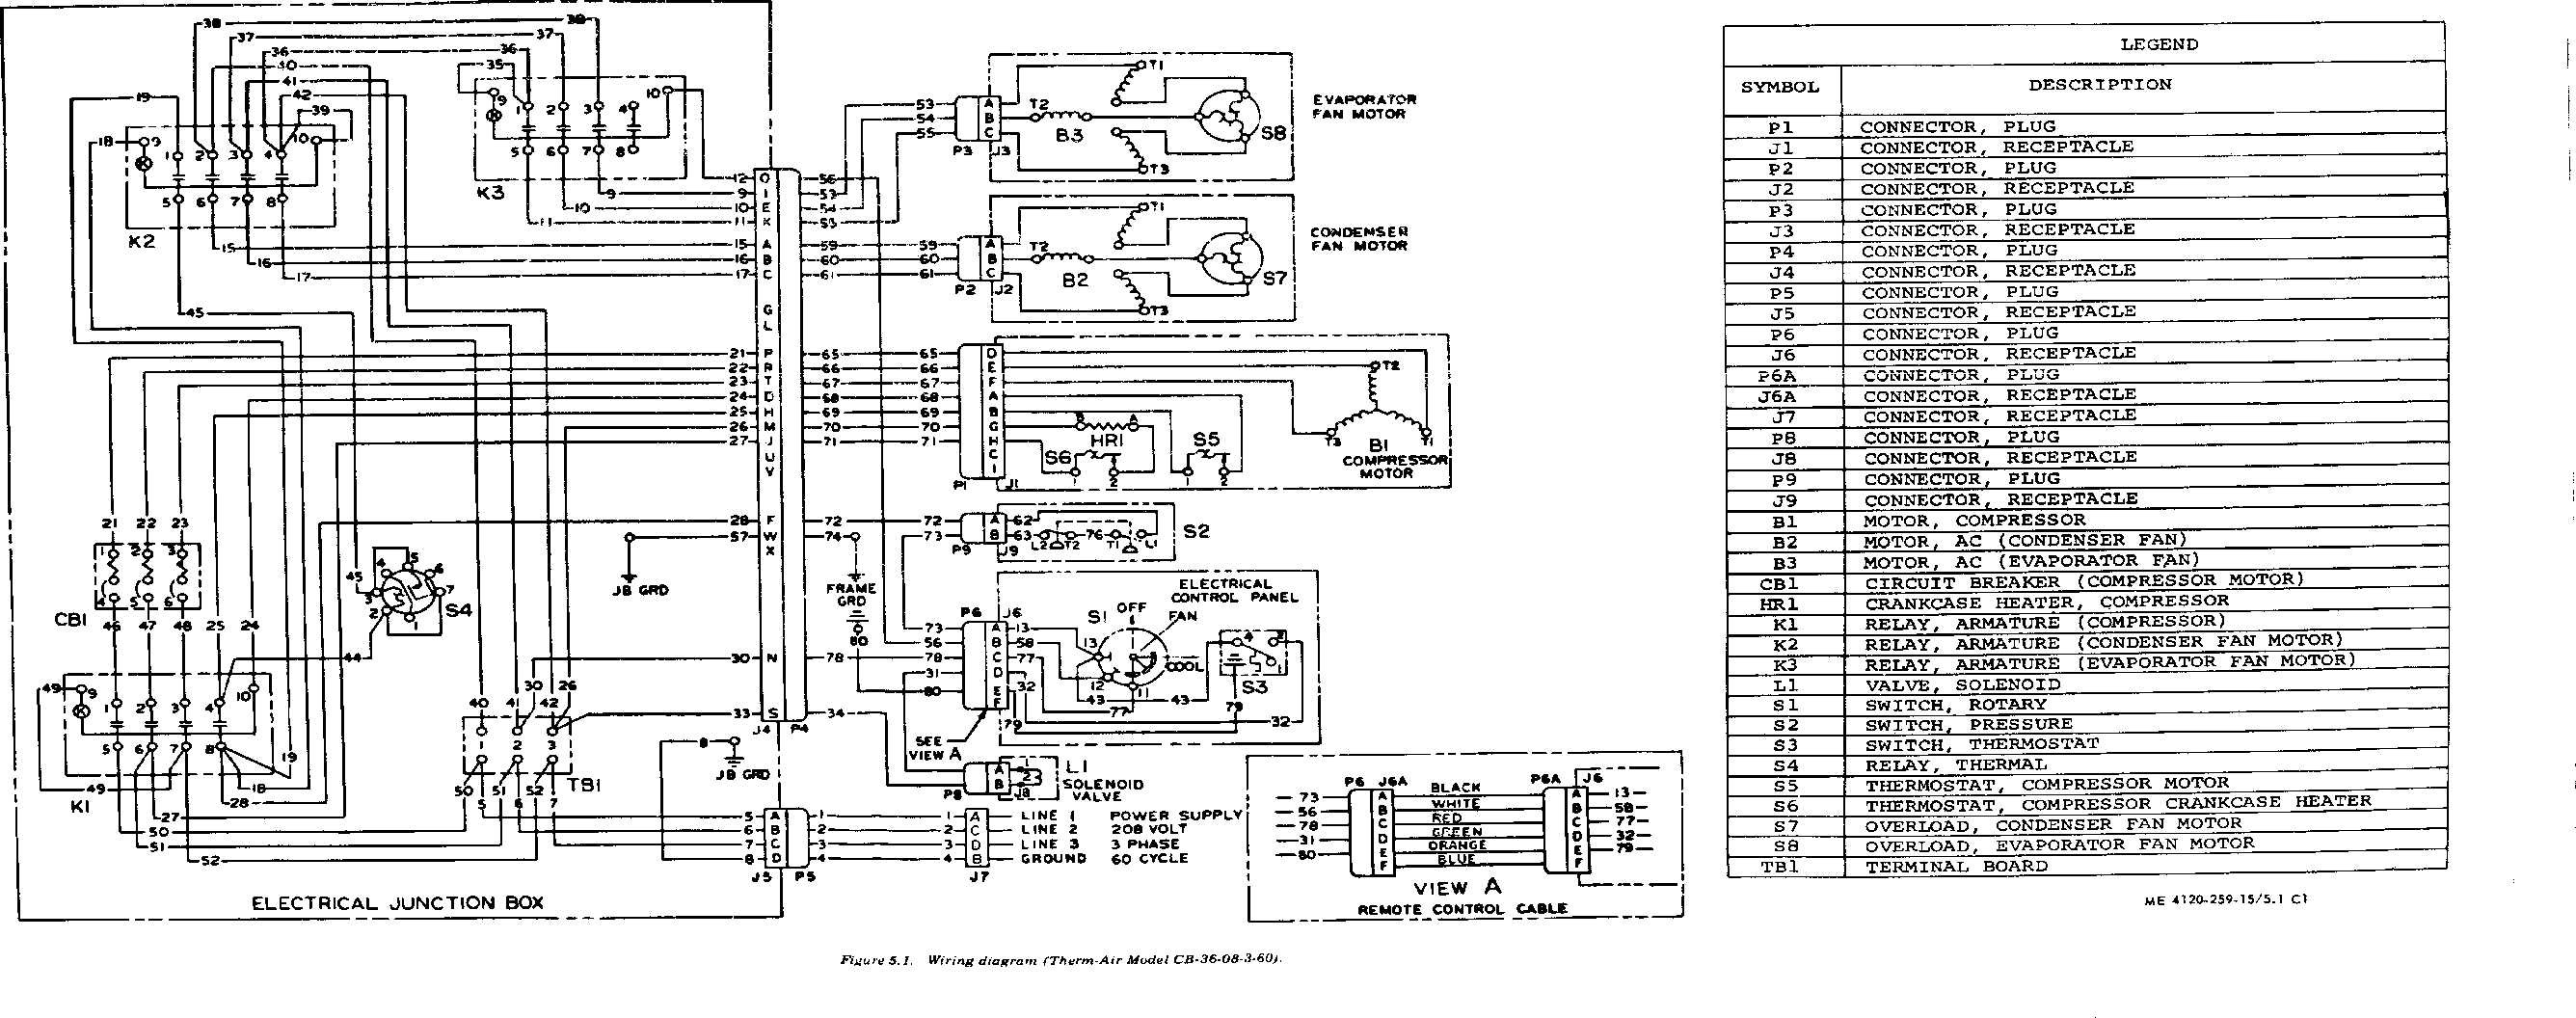 trane ac wiring diagram Collection-Trane Wiring Diagrams Best Wiring Diagram Payne Ac Unit Best Trane Wiring Diagrams Hvac Trane Wiring Diagrams At Trane Wiring Diagram 8-c